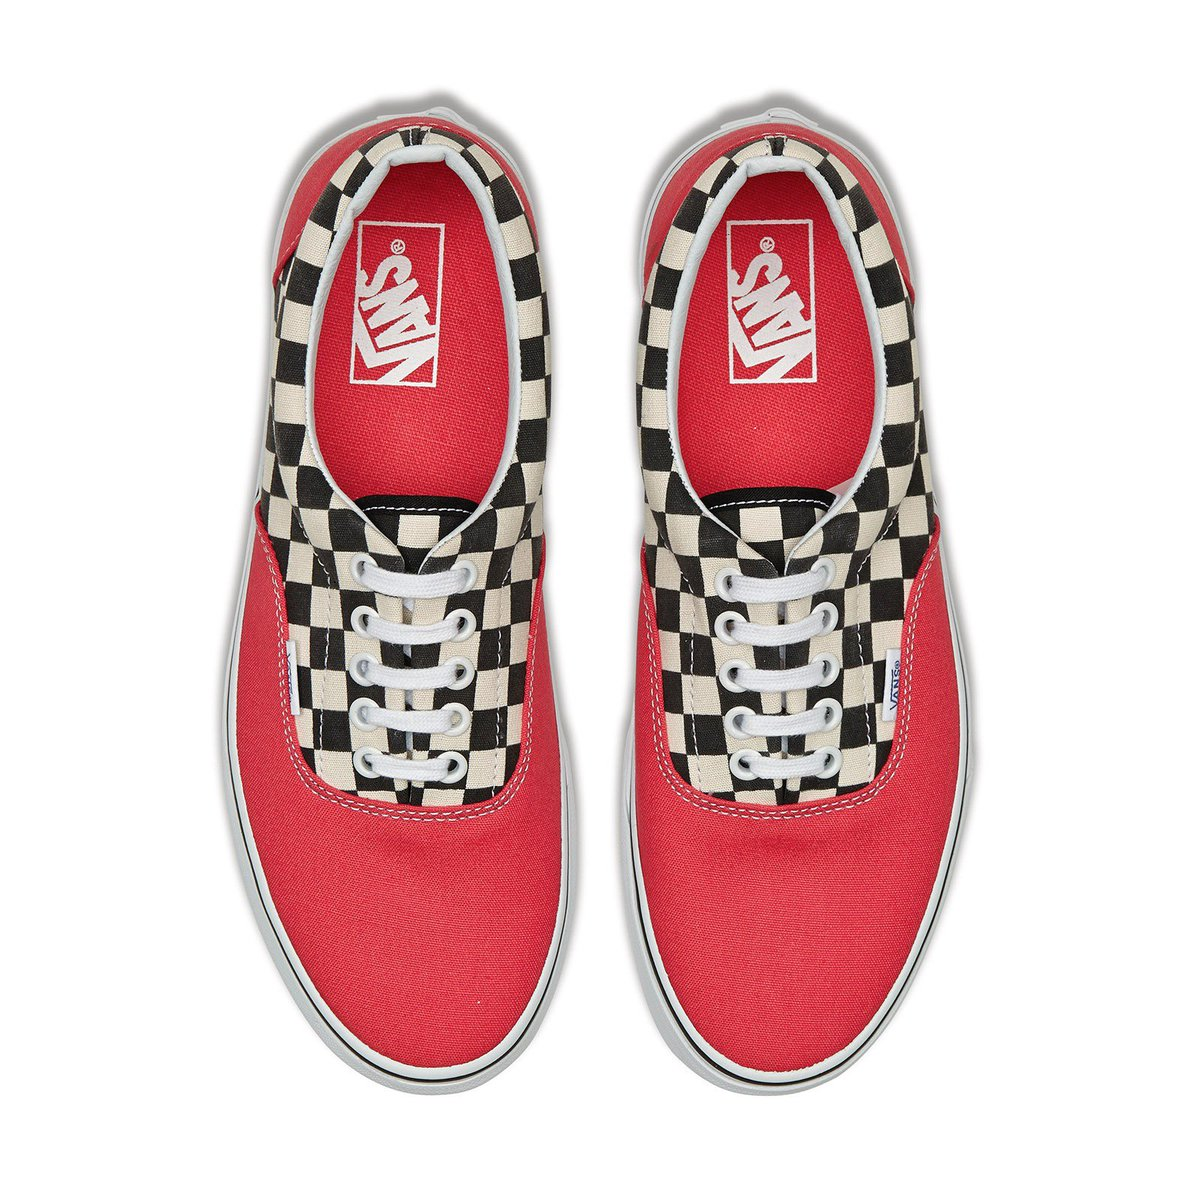 Vans - Era 2 Tone Check Sneakers Red Check    Under £40 in SALE here --&gt;  http:// tinyurl.com/y8rfahr7  &nbsp;    #sale #vans #trainers #deals<br>http://pic.twitter.com/E4Cvswarfq